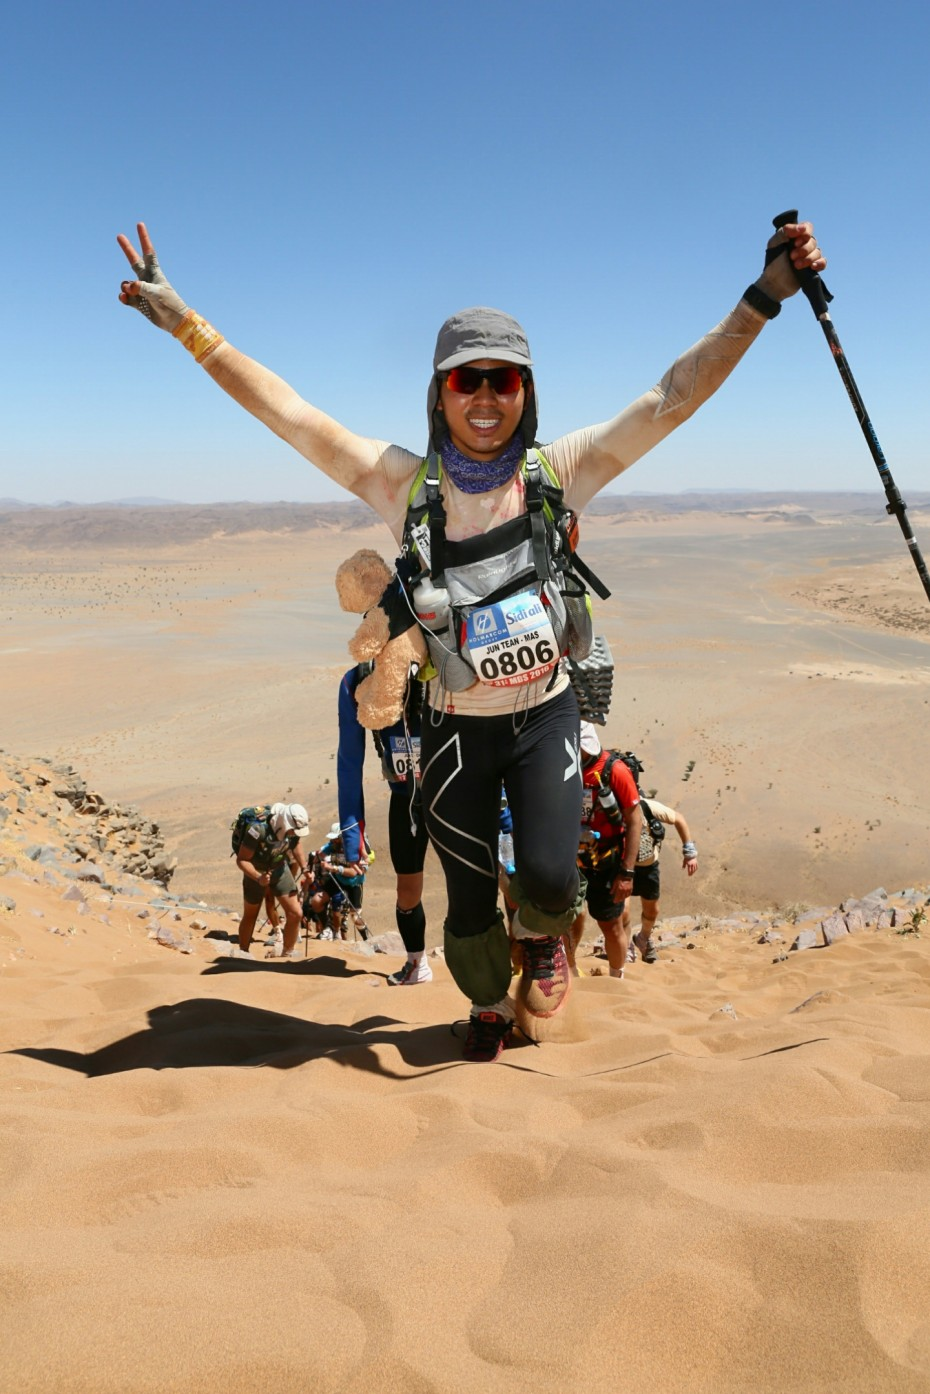 Red Ribbon youth icon Jeff Lau was in the Sahara Desert for the Marathon Des Sables – dubbed the world's toughest foot race – to raise funds for the Malaysian AIDS Foundation. — Handout